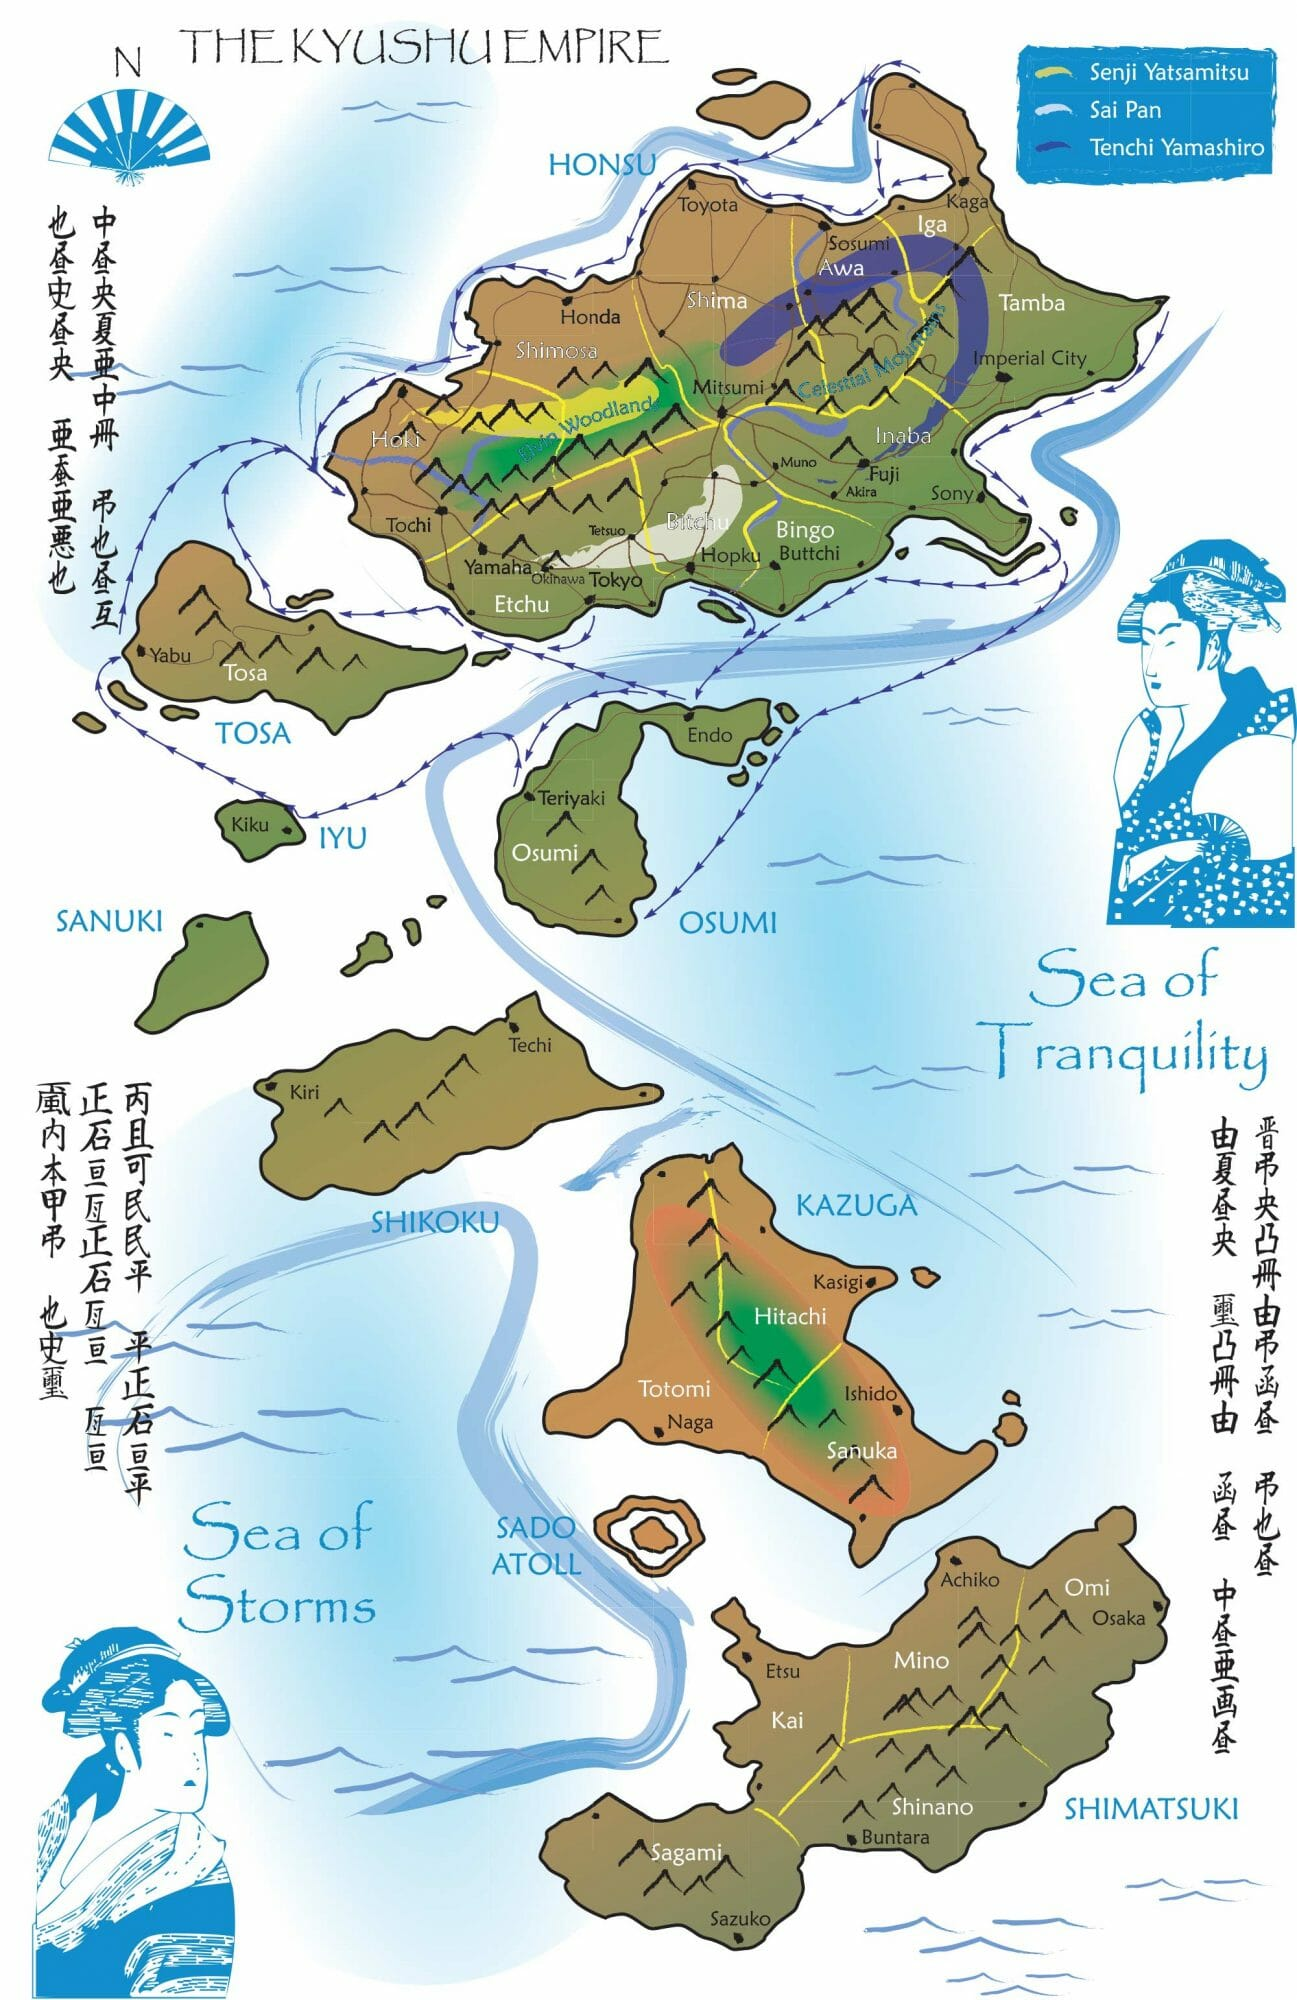 The Kyushu Empire